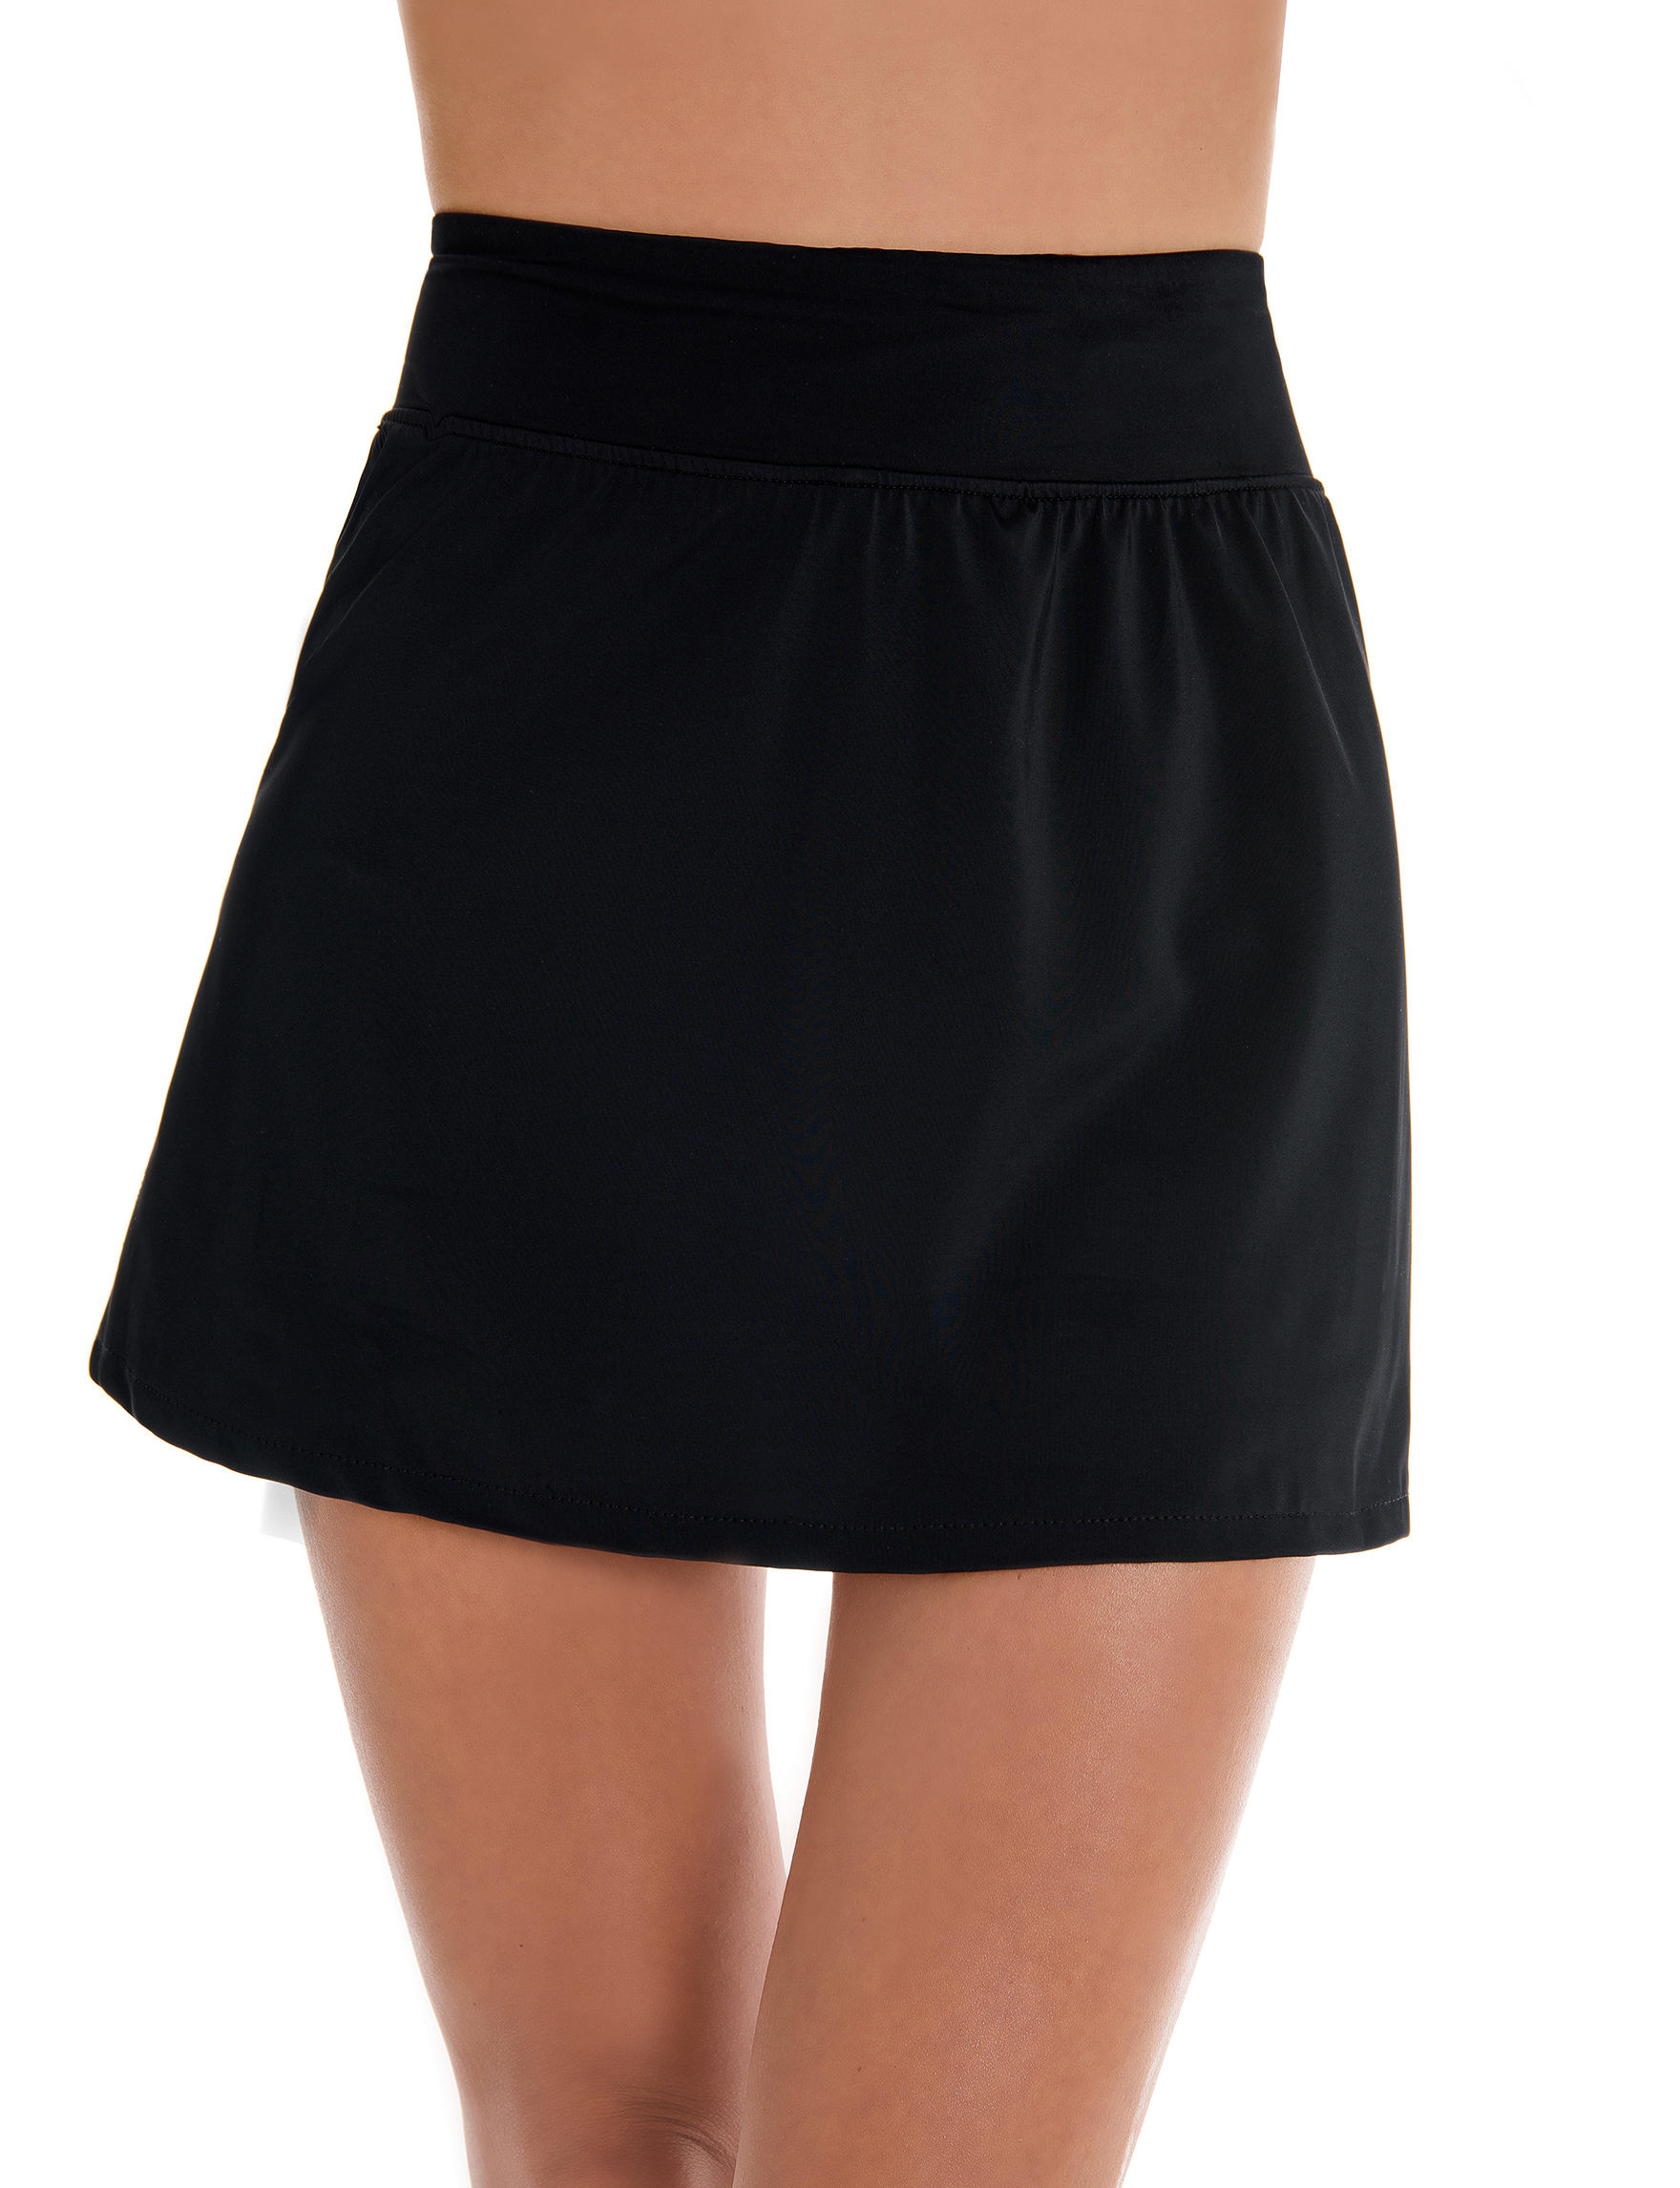 Trimshaper Black Swimsuit Bottoms Skirtini